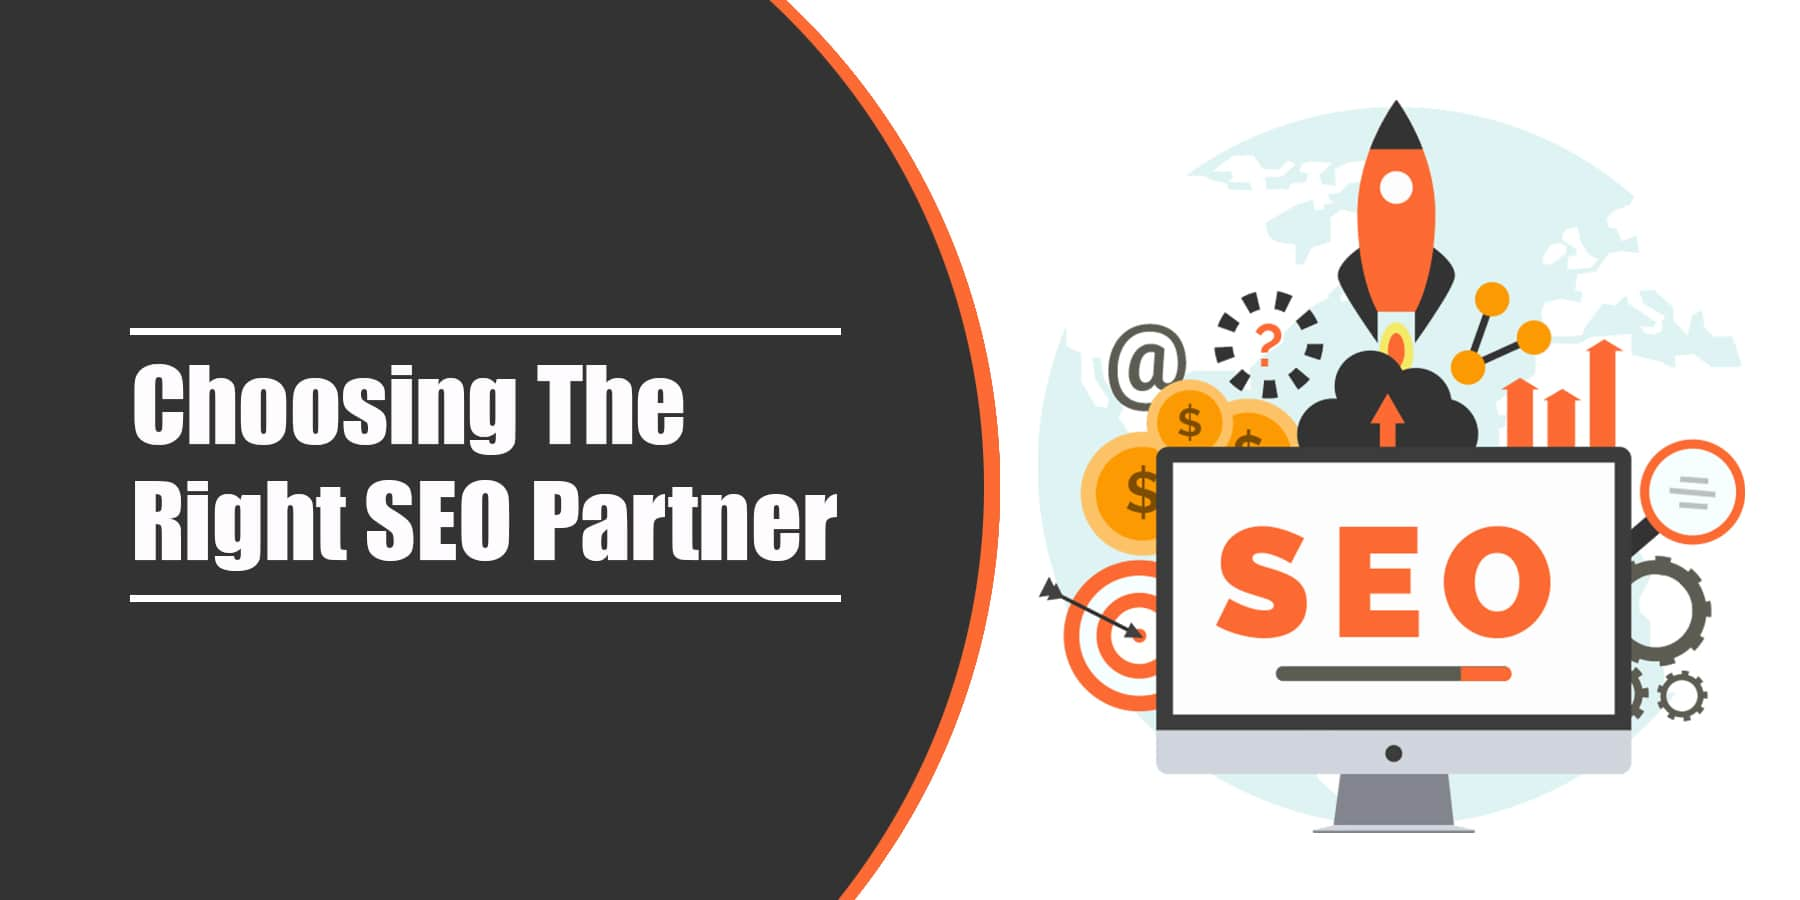 Choosing Right SEO Partner